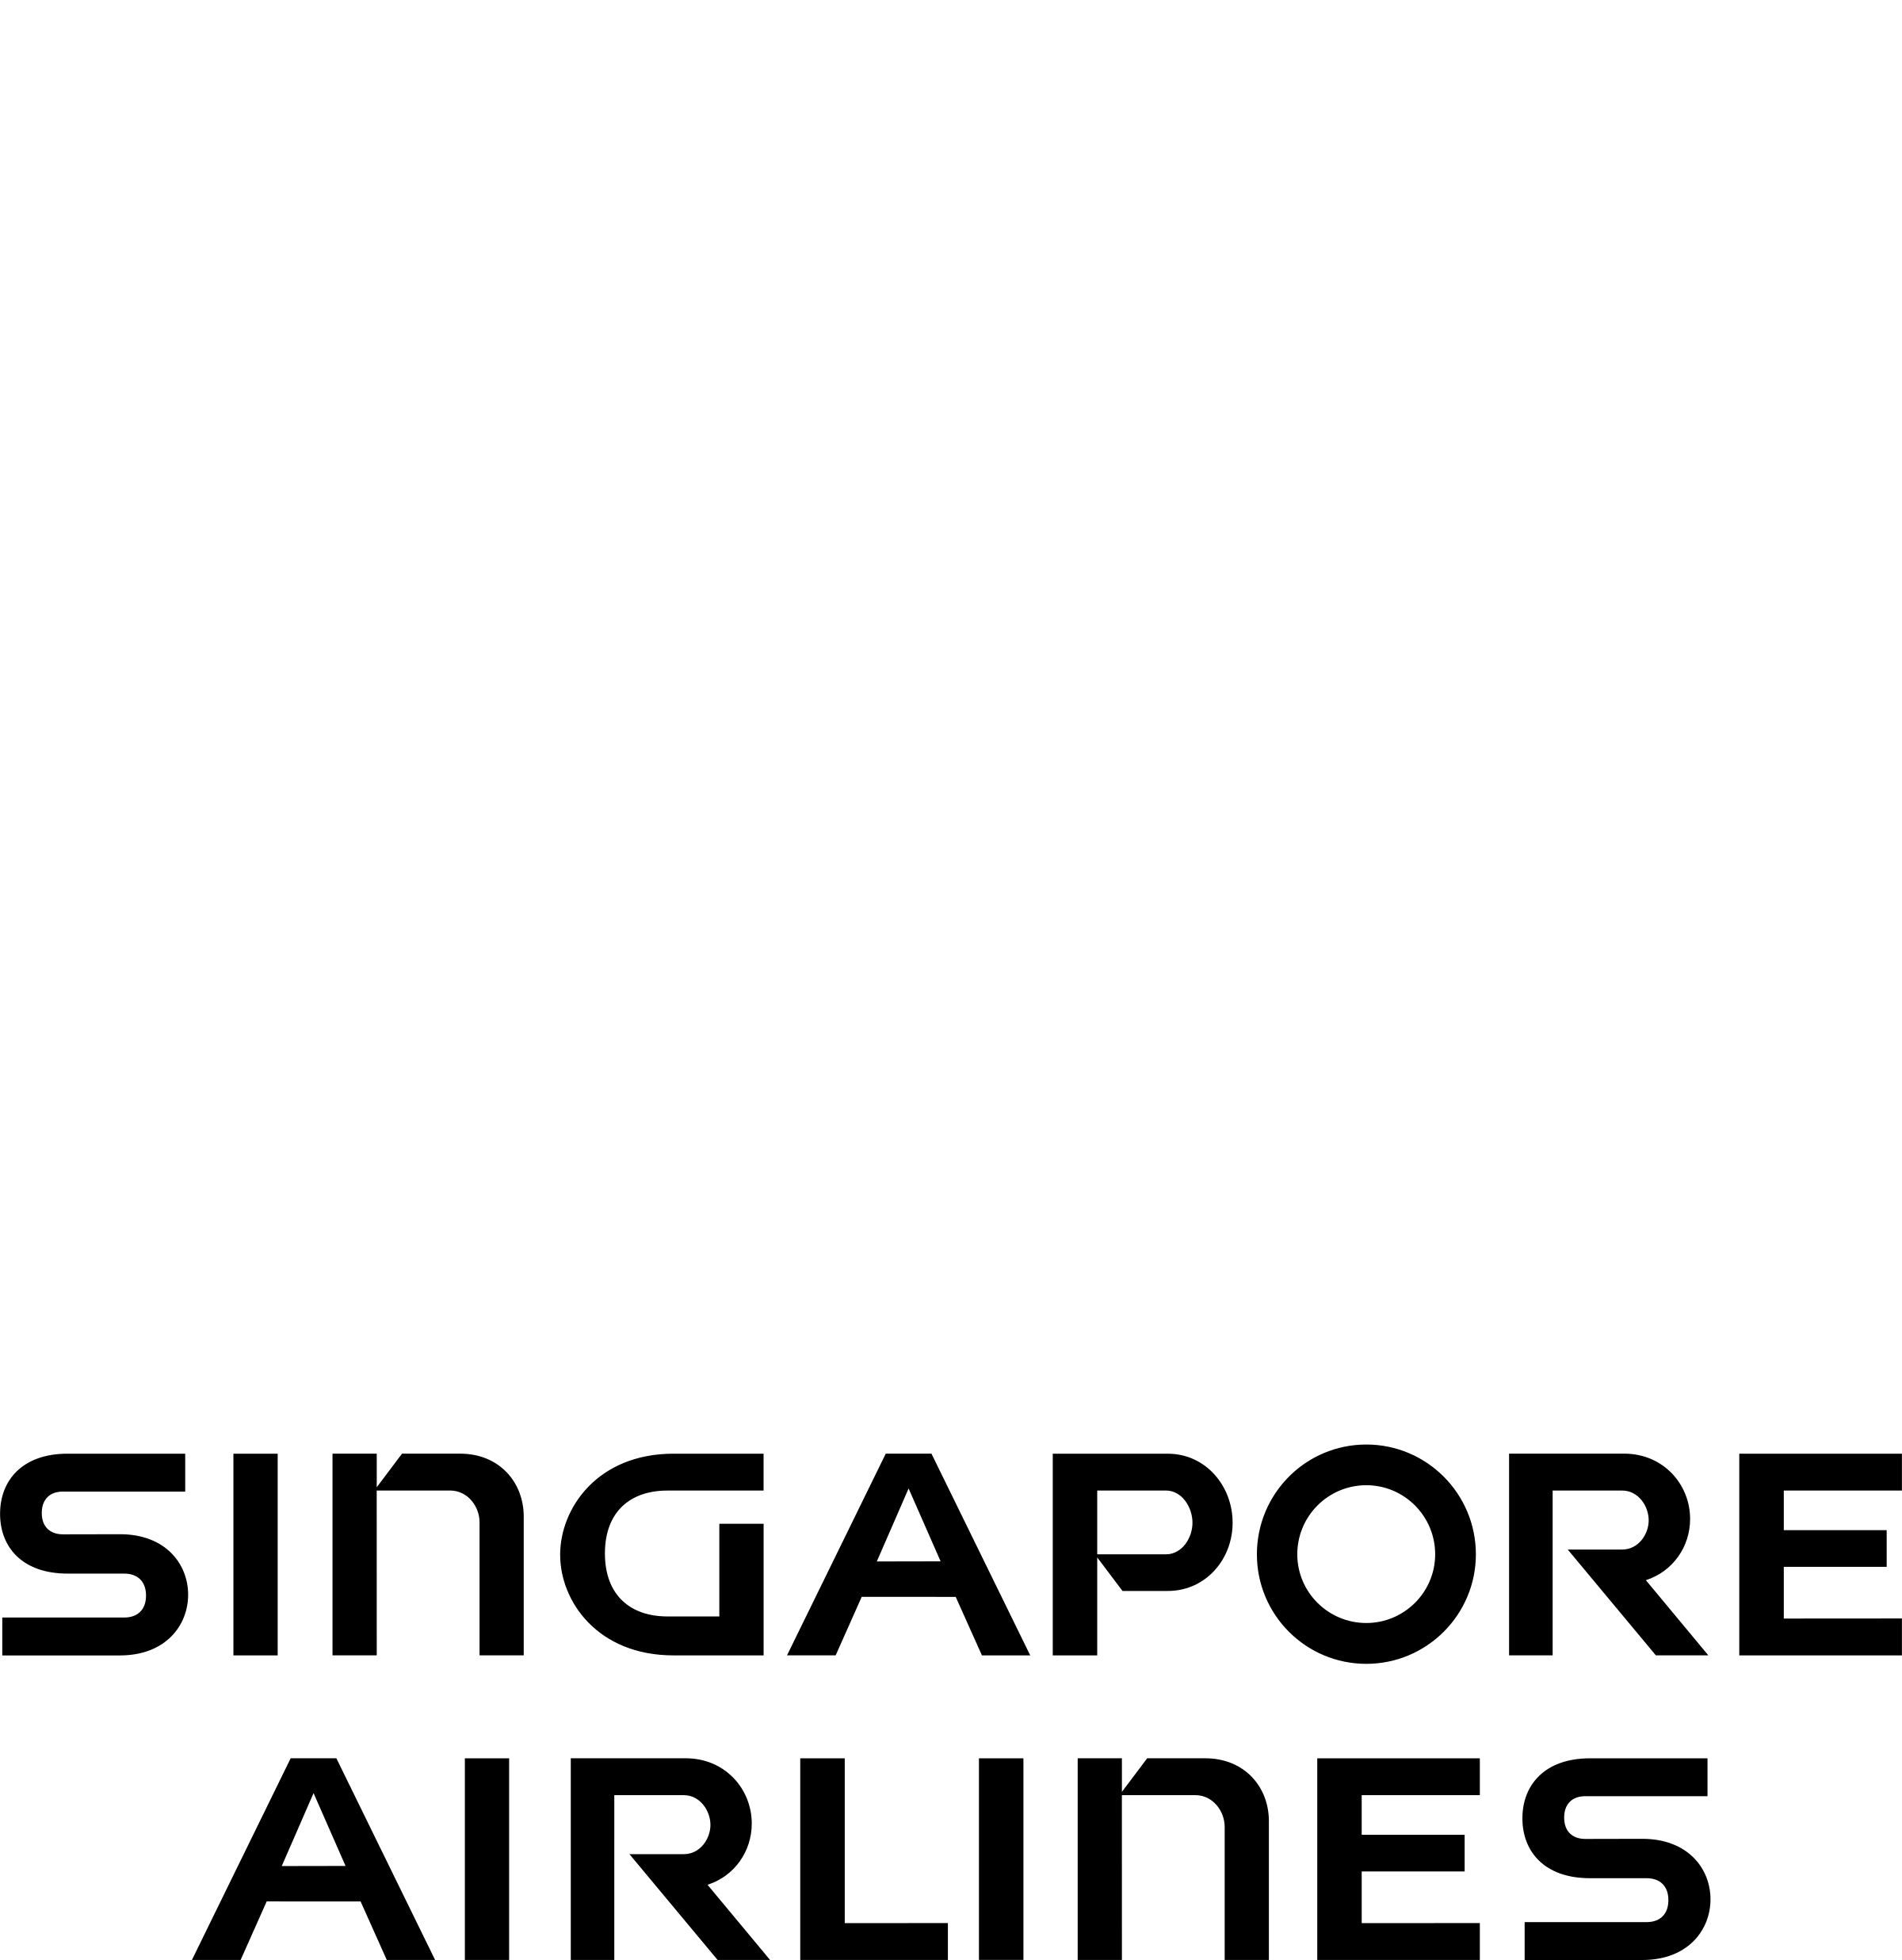 Singapore Airlines Logo - Singapore Airlines Logo PNG Transparent & SVG Vector - Freebie Supply